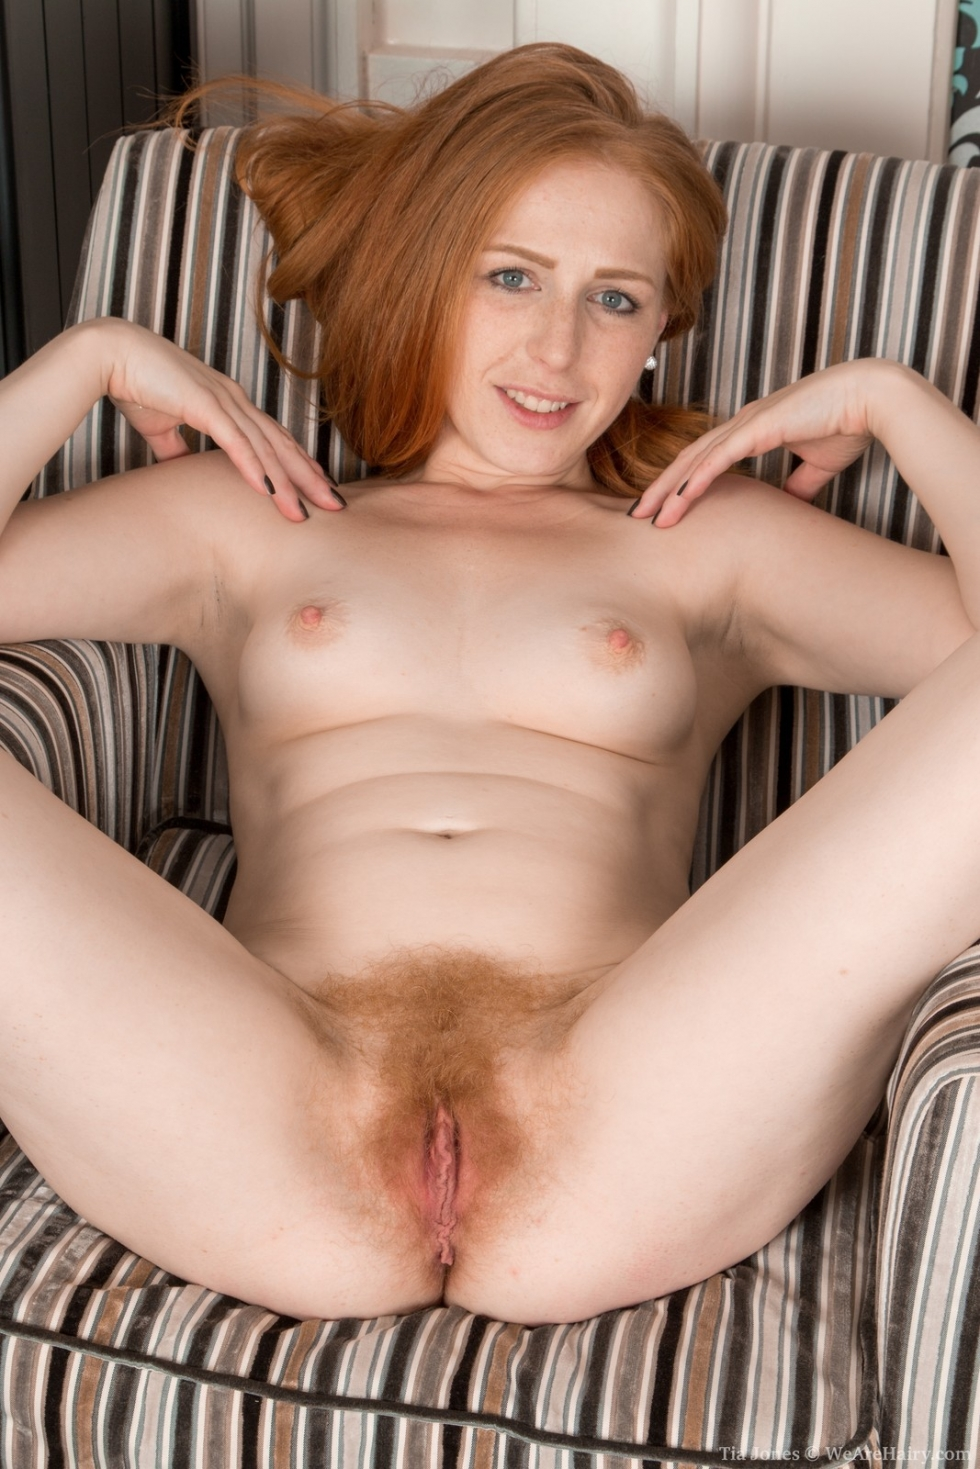 Horny red head spreads her tight wet pussy 7